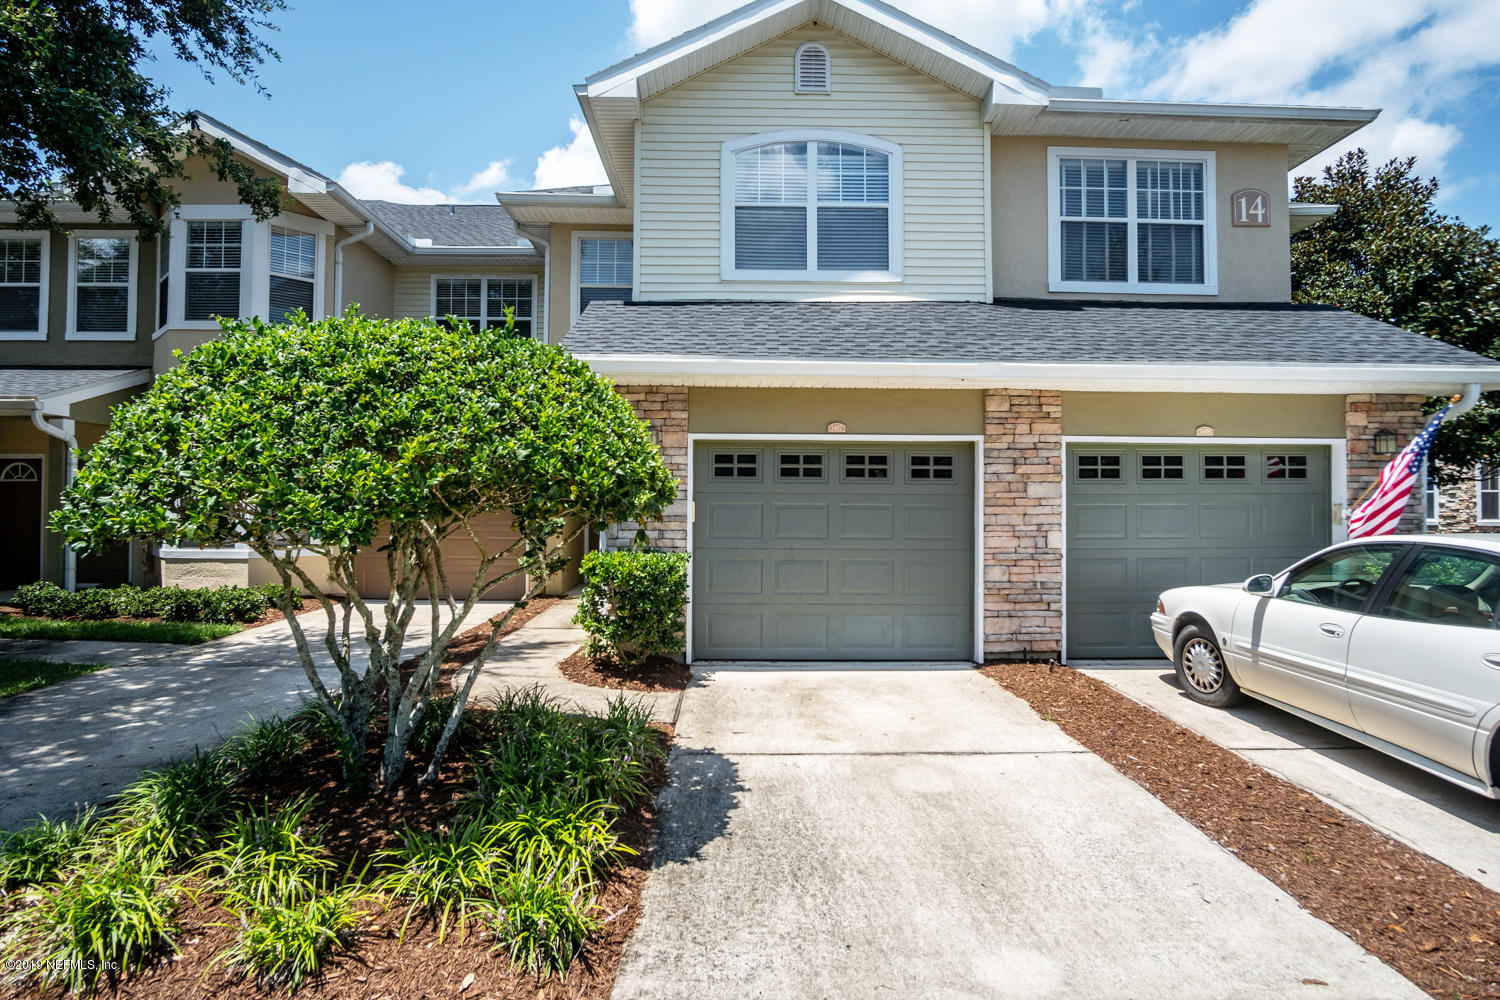 3750 SILVER BLUFF, ORANGE PARK, FLORIDA 32065, 3 Bedrooms Bedrooms, ,2 BathroomsBathrooms,Residential - condos/townhomes,For sale,SILVER BLUFF,1010906